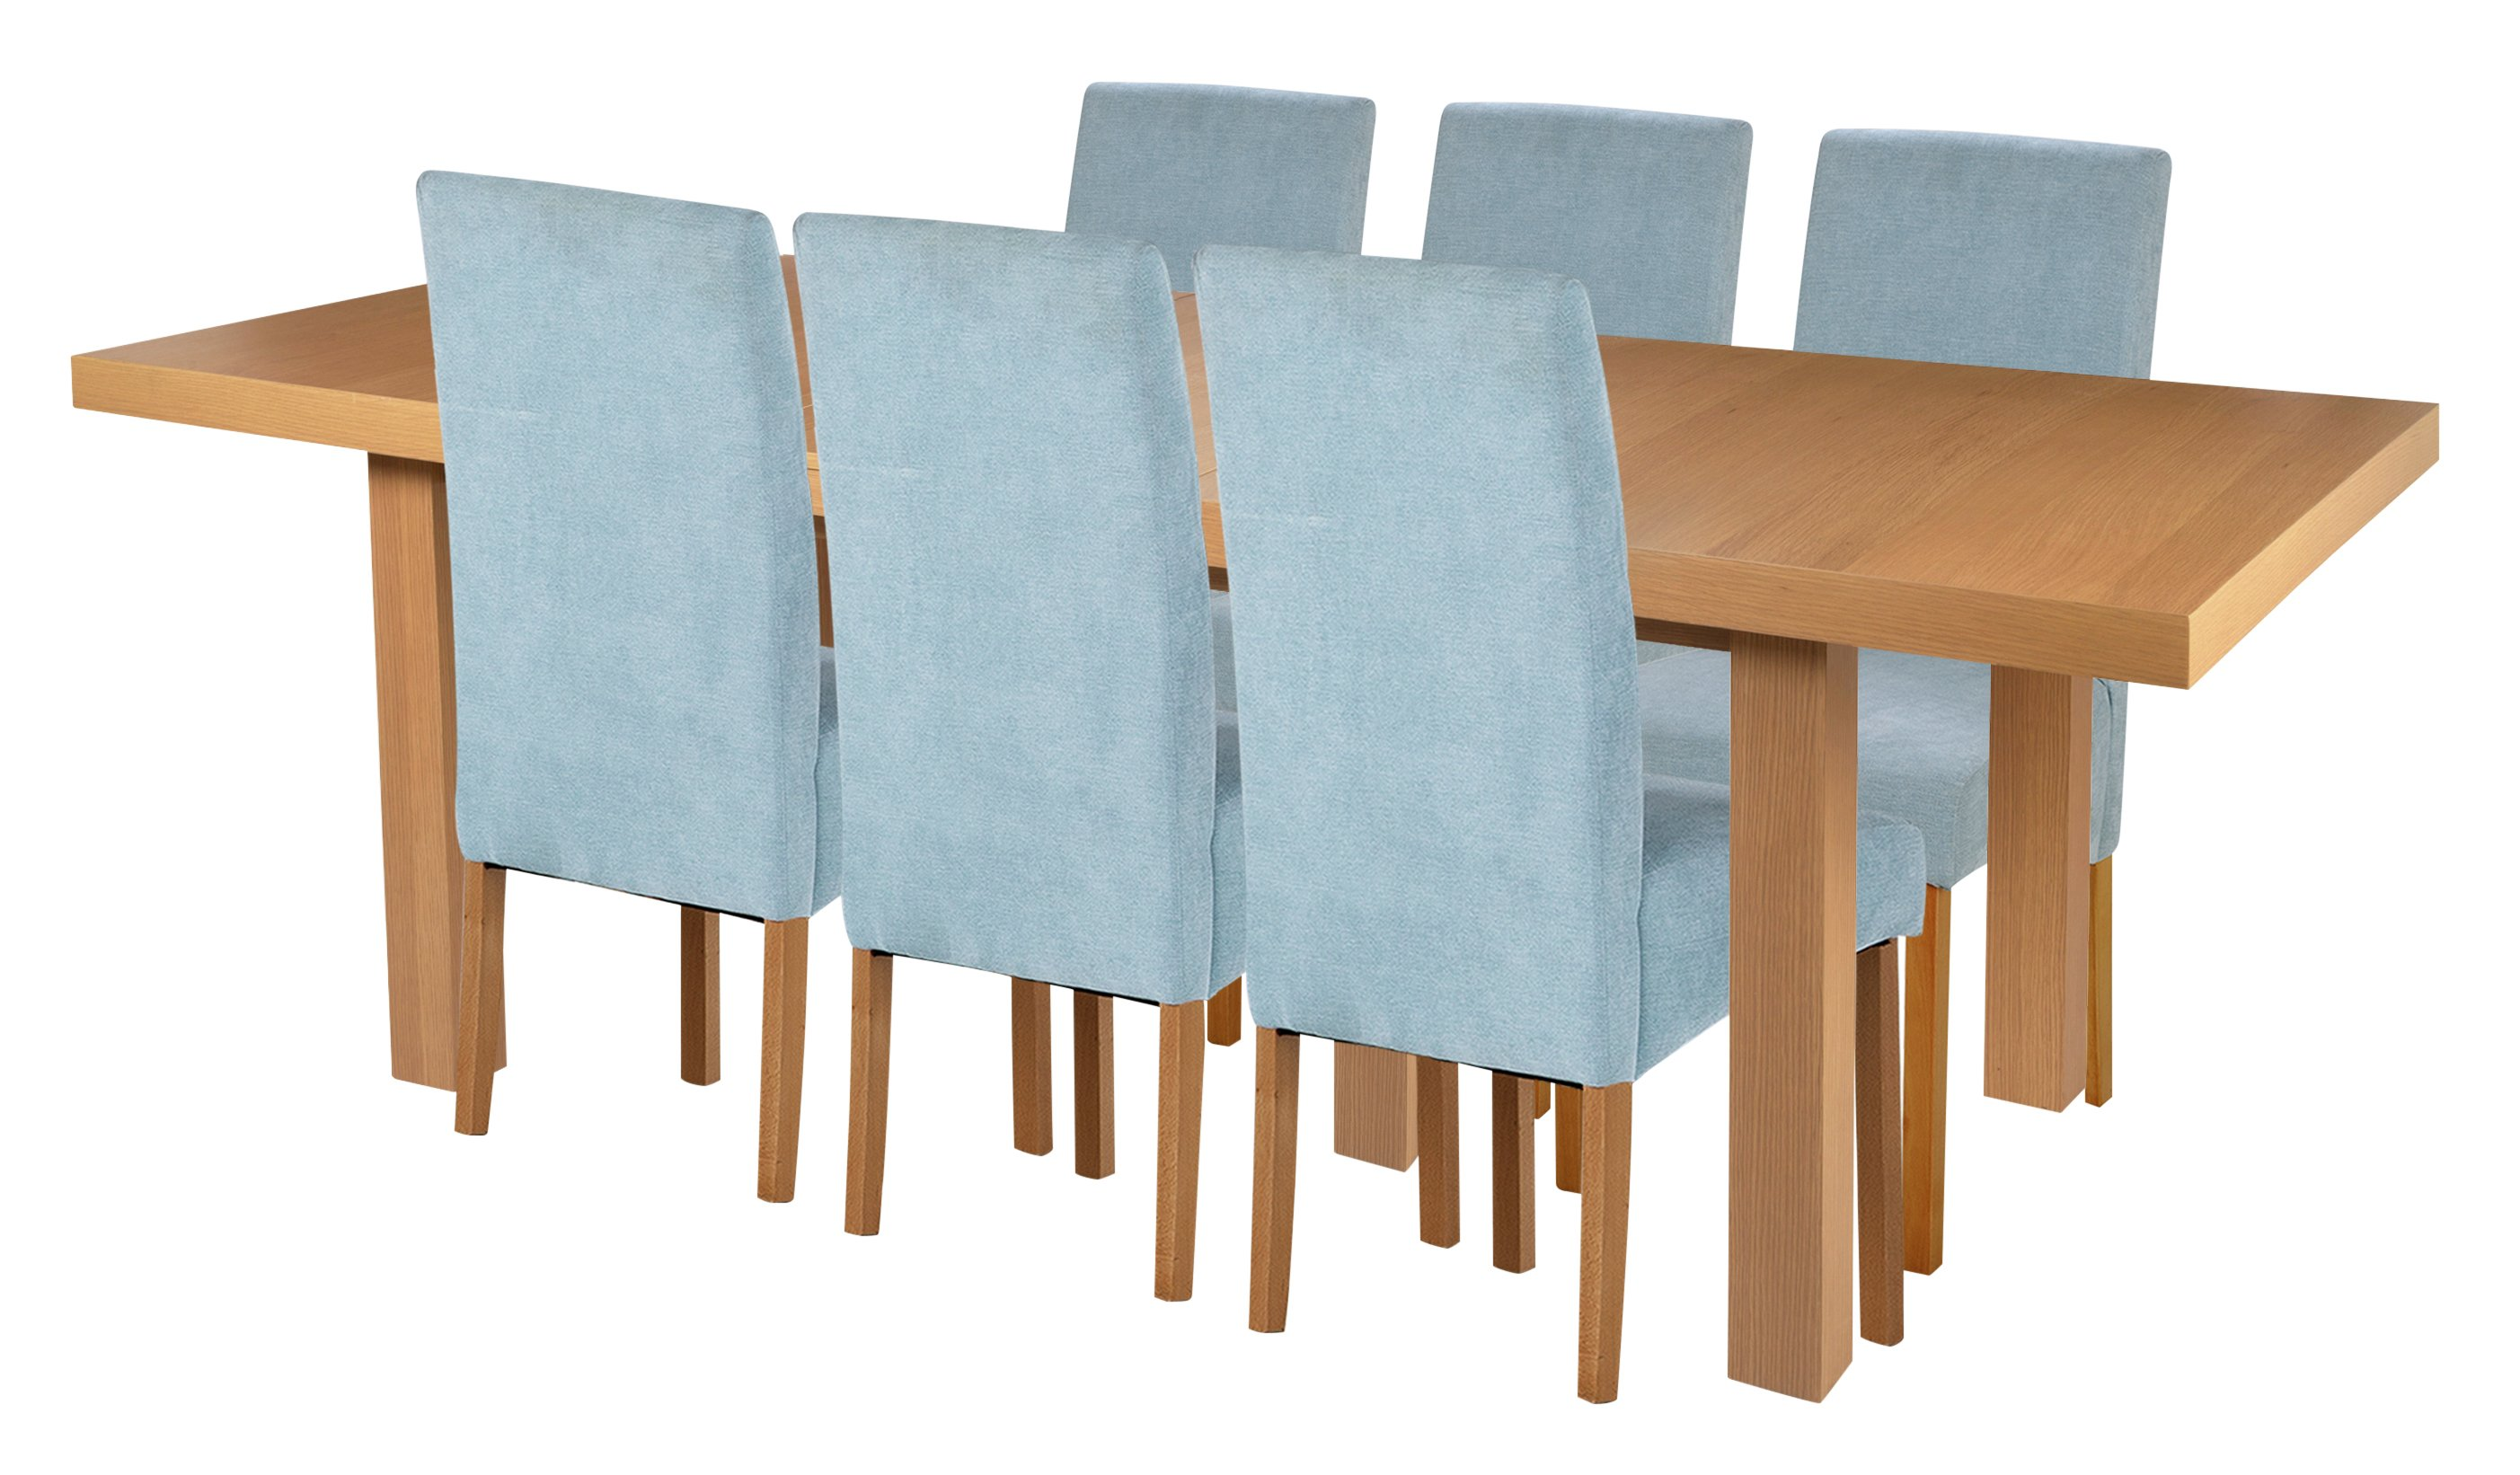 cosgrove extendable oak dining table and 6 cream chairs. click to zoom cosgrove extendable oak dining table and 6 cream chairs